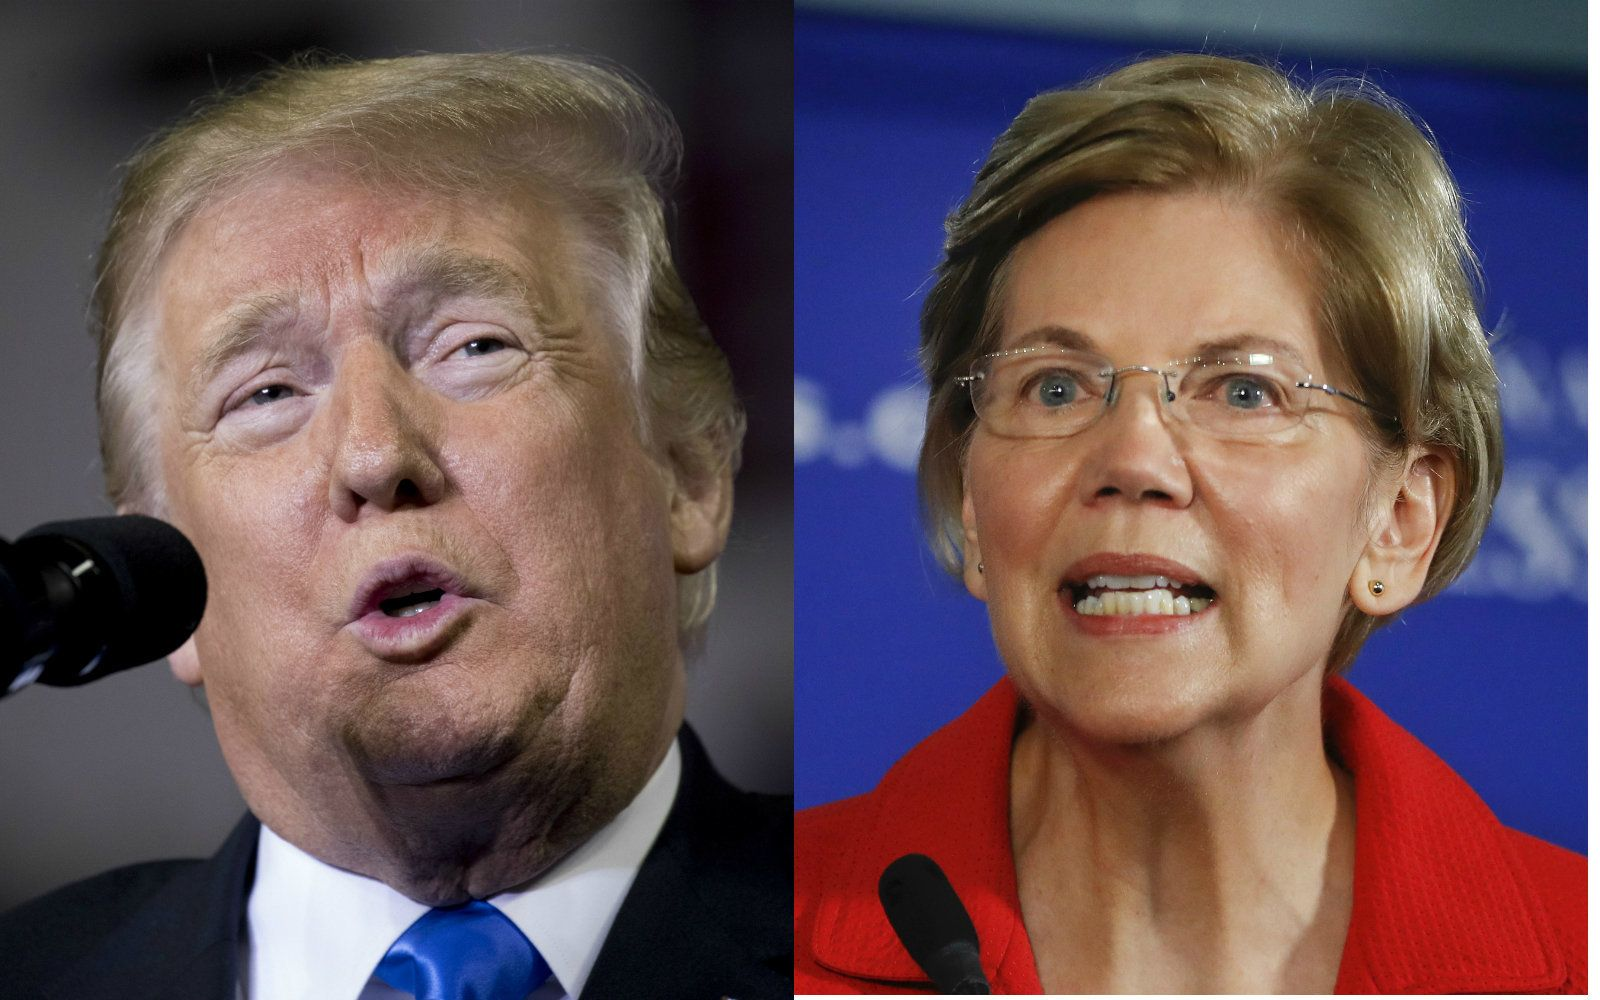 President Donald Trump and Massachusetts Senator Elizabeth Warren.